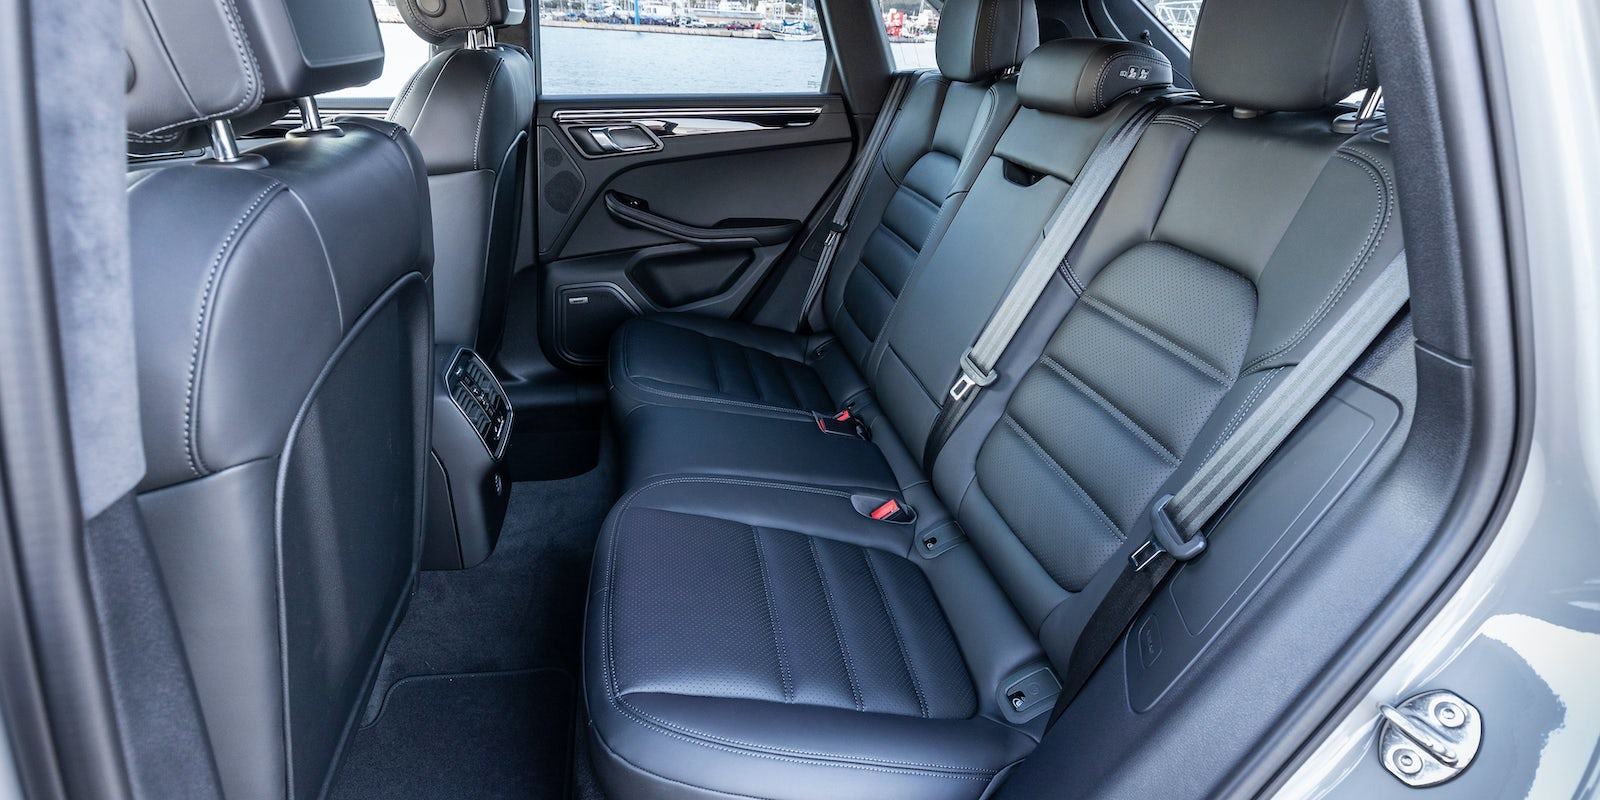 Porsche Macan Boot Space Dimensions Carwow